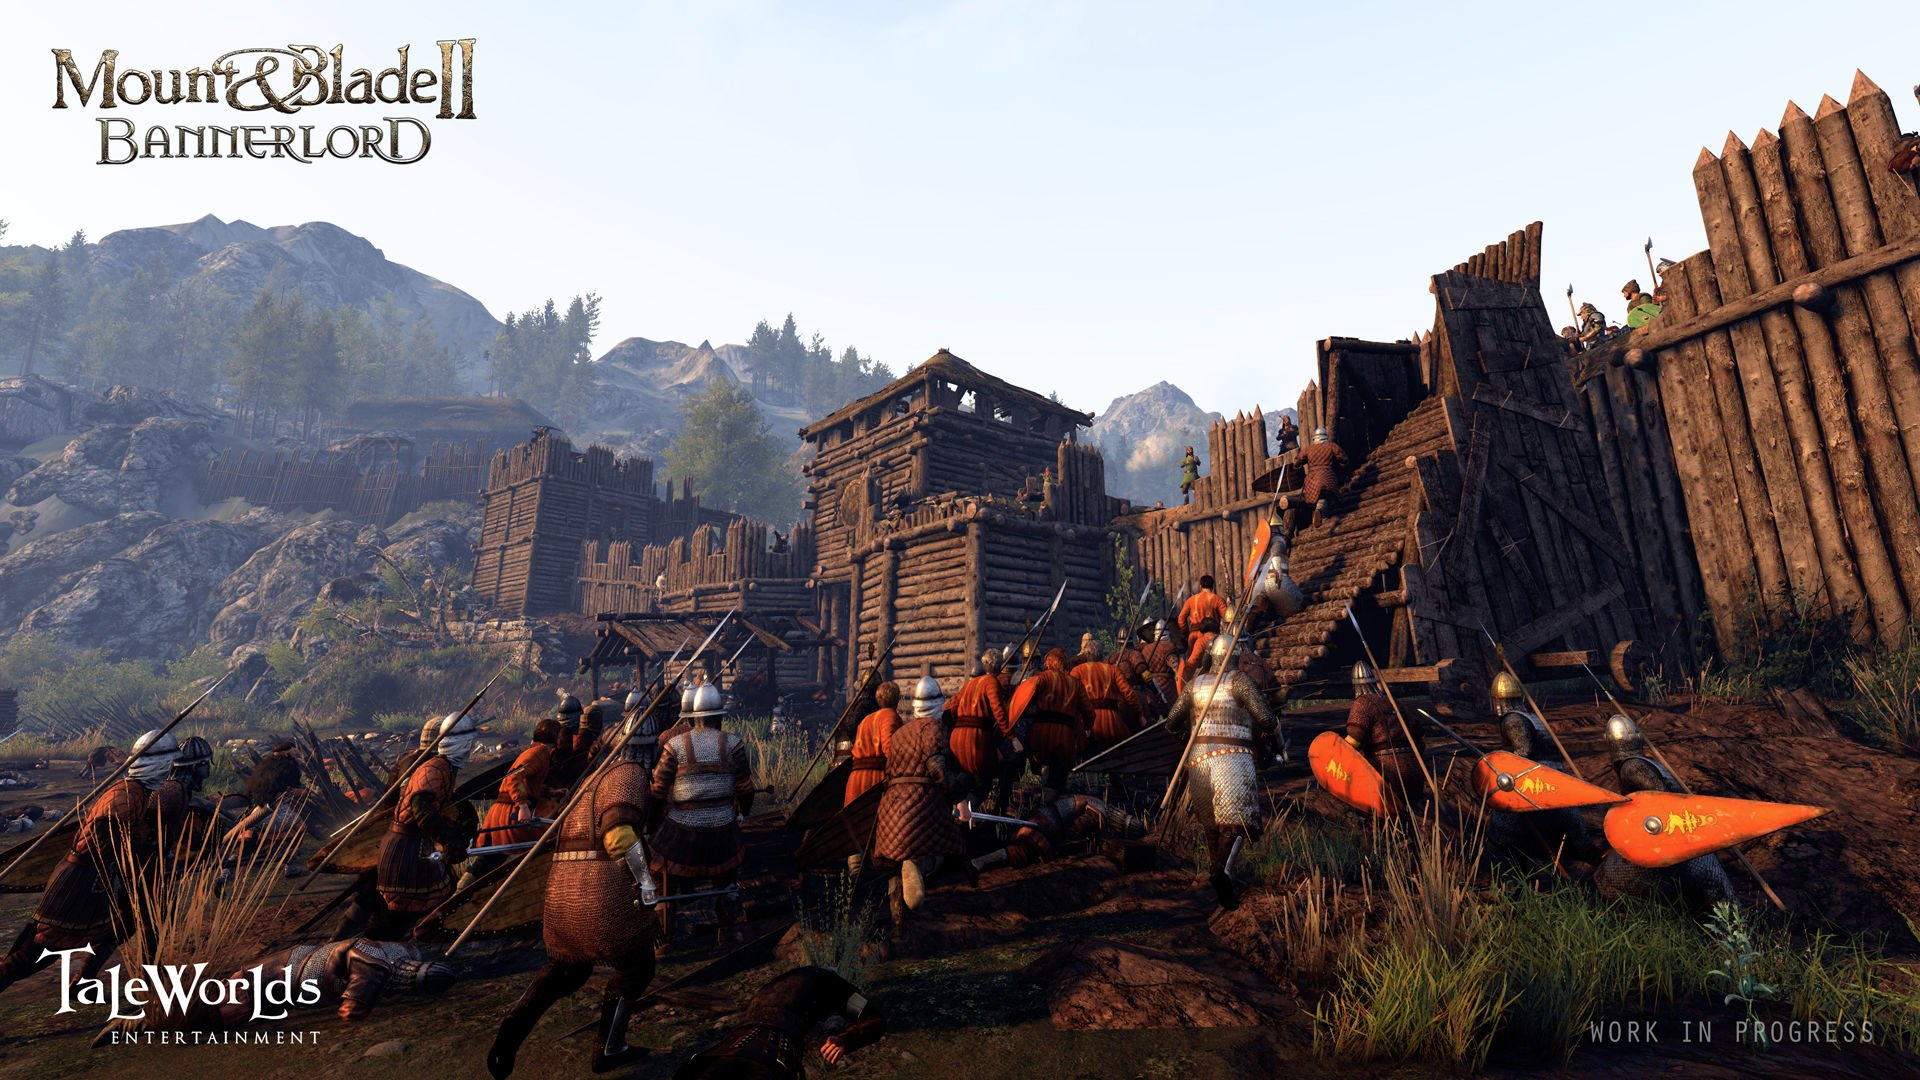 Mount Amp Blade Ii Bannerlord Hd Wallpaper Background